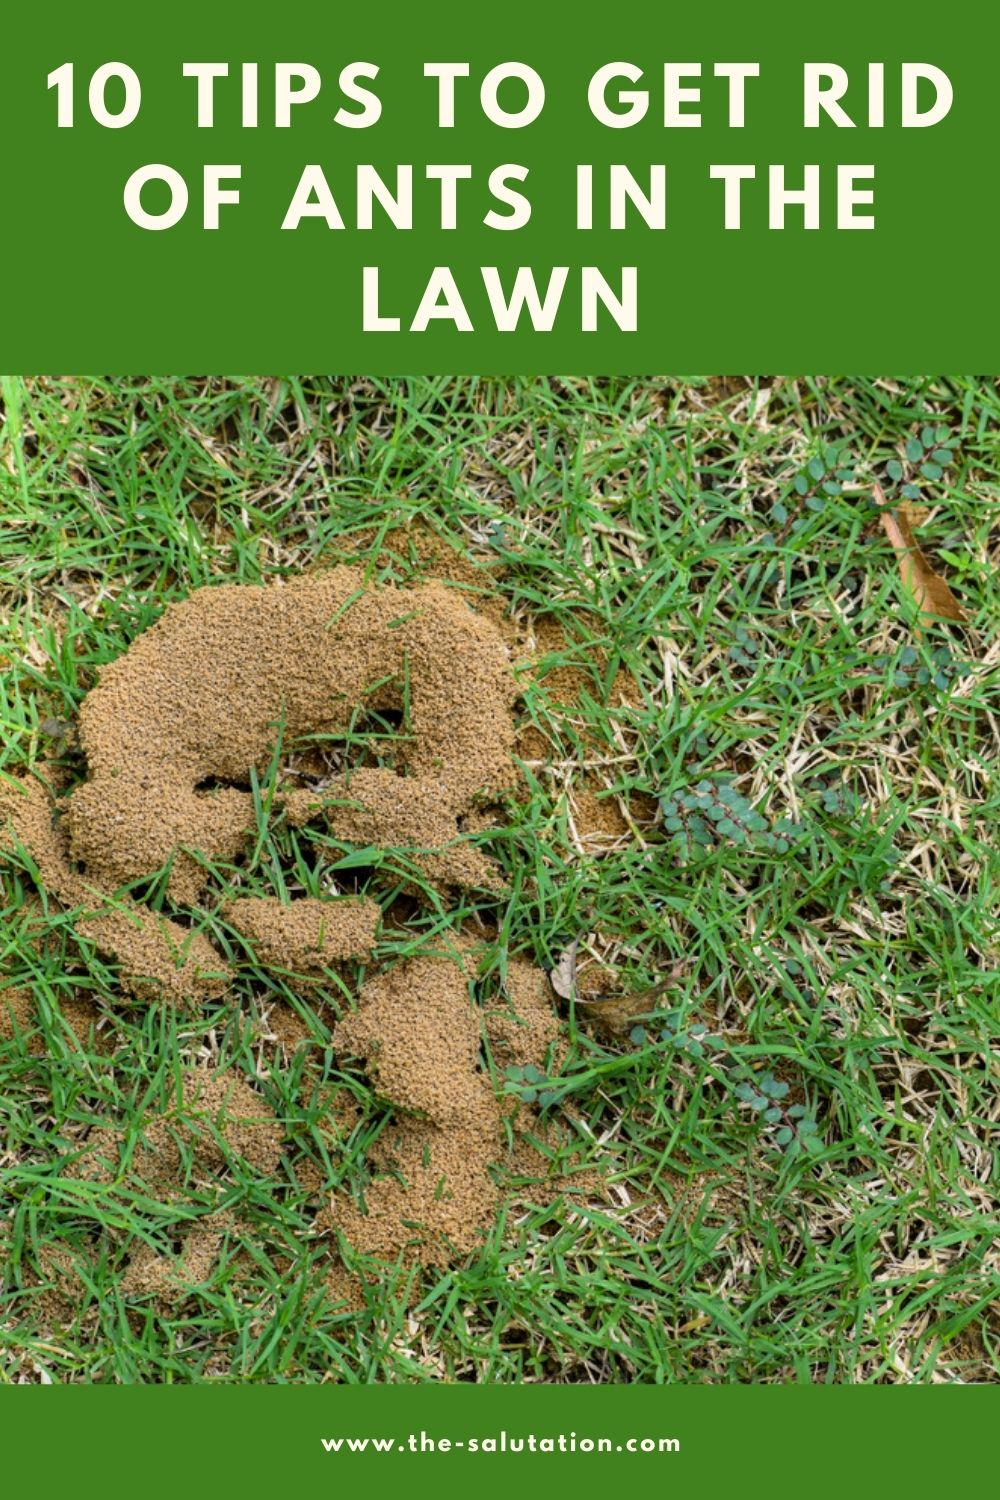 10 Tips to Get Rid of Ants in the Lawn 1